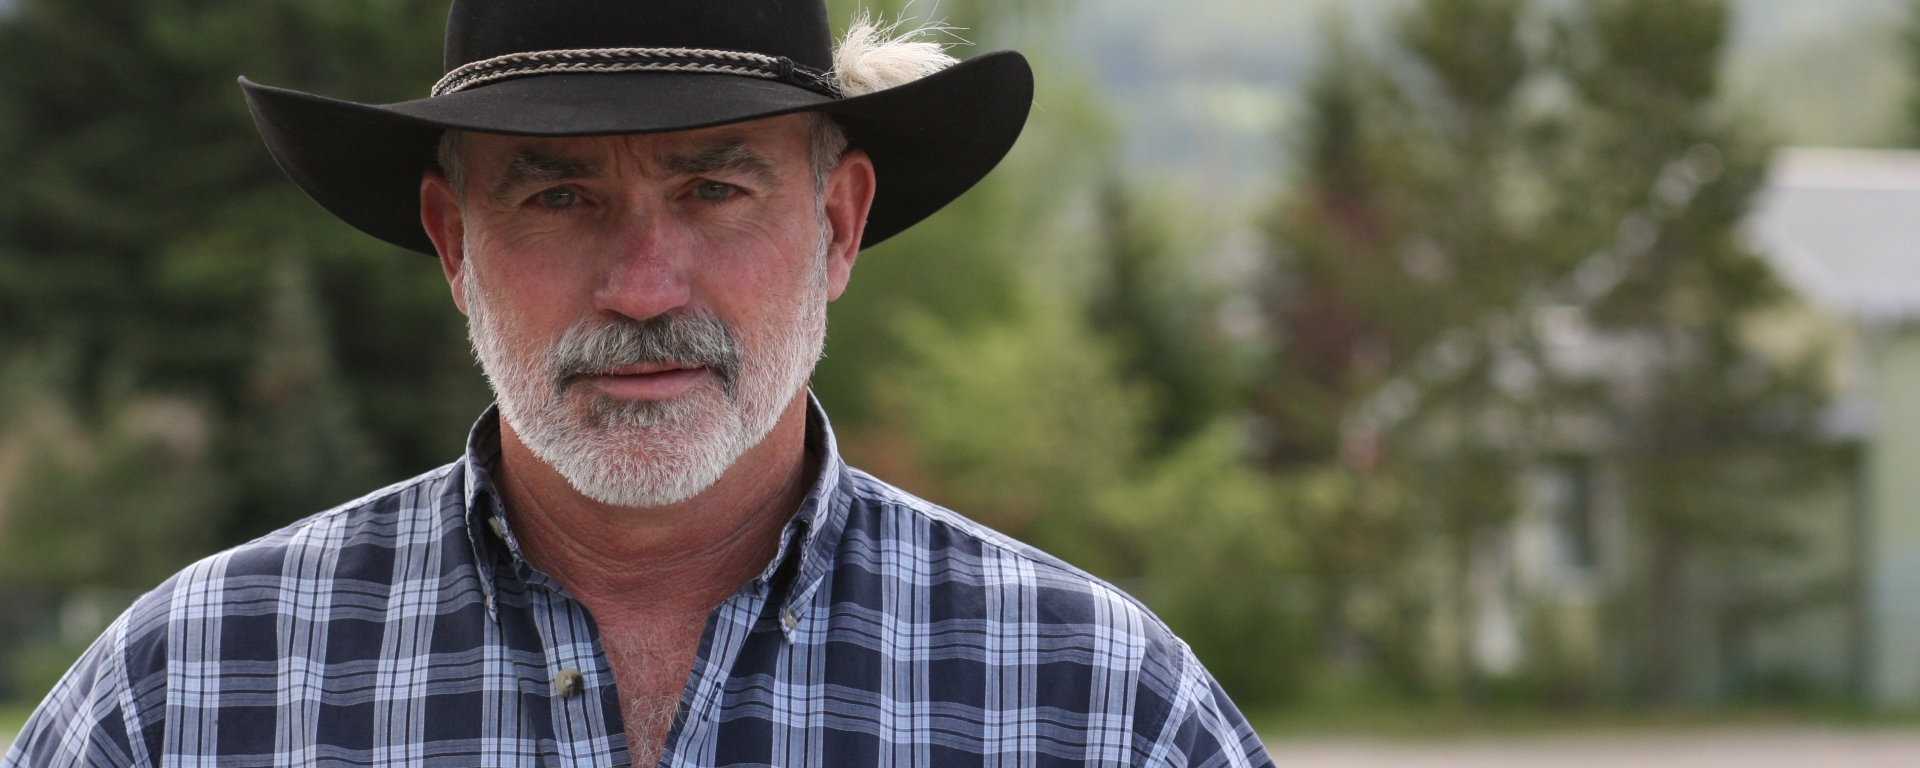 Mantracker, Terry Grant, interview, carpentry